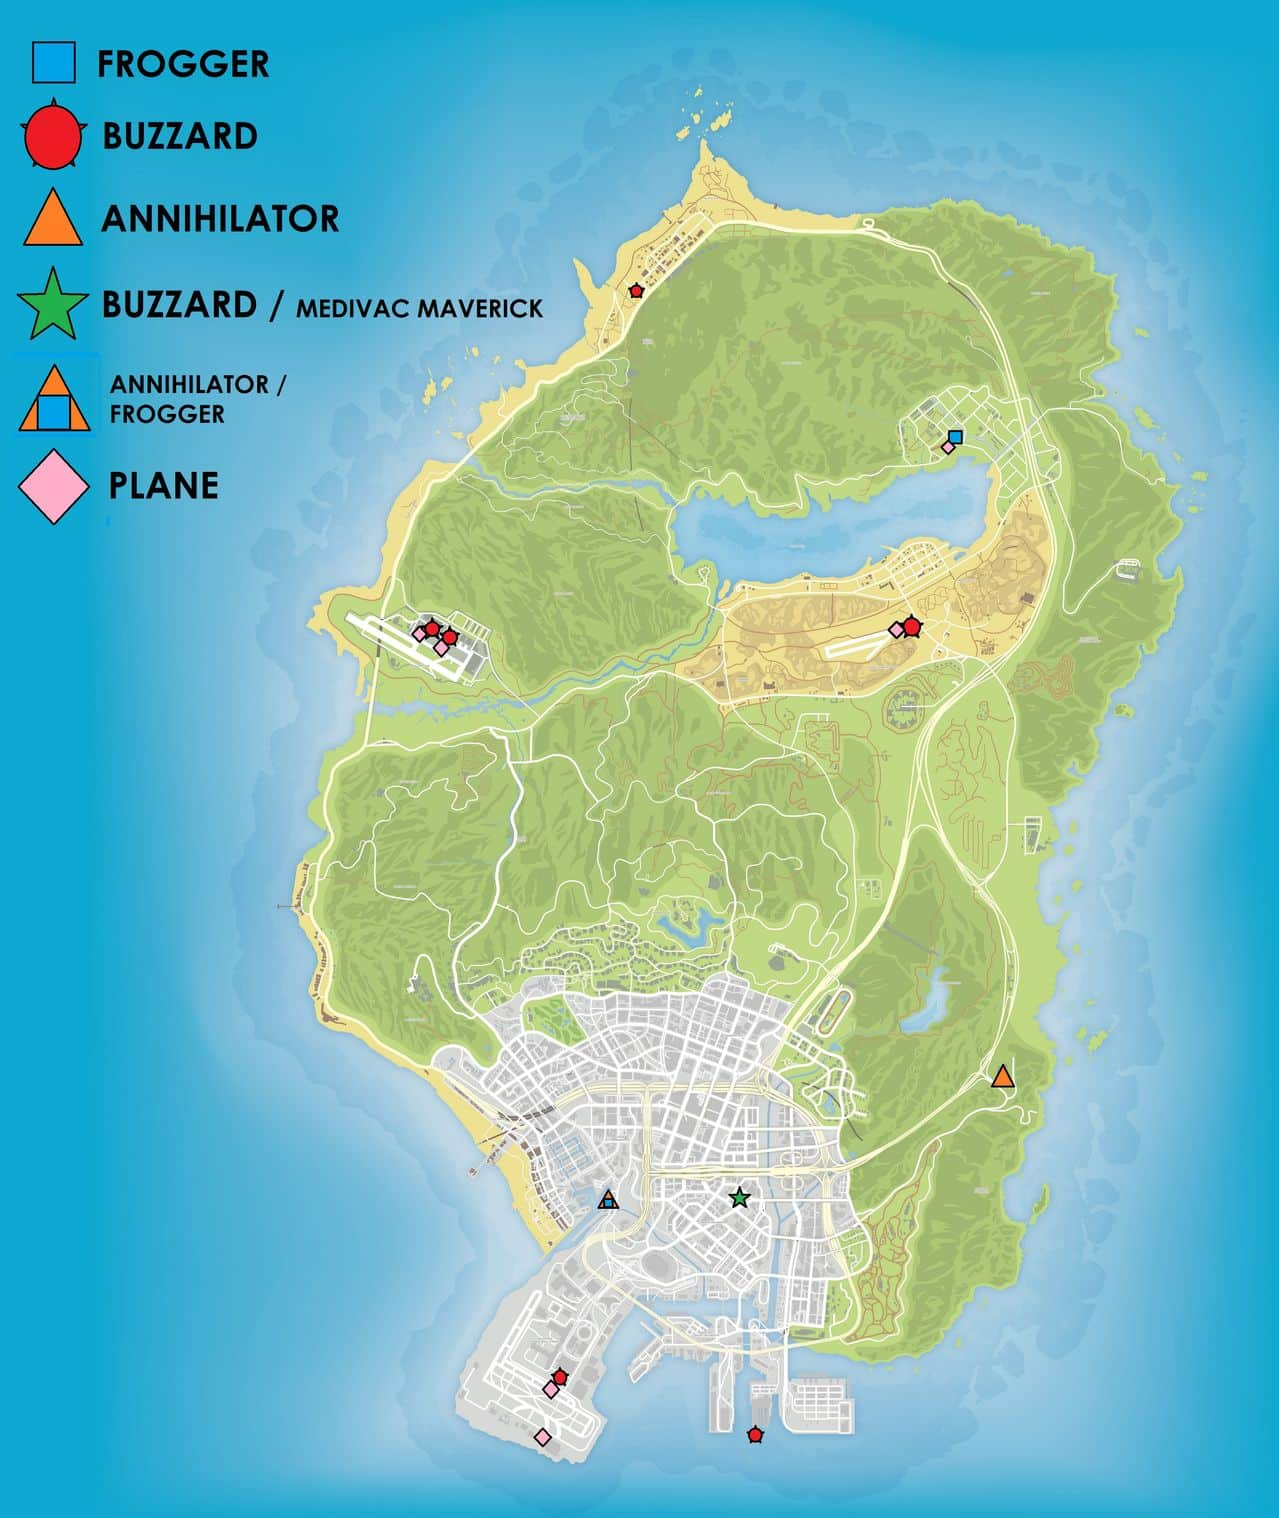 gta get a helicopter with Gta Online Hints Tips on Gta Vice City Cheats Free fvaer moreover Video Game Memes additionally Panzer furthermore Watch additionally Watch Dogs Pc Controls Guide Idnum278.